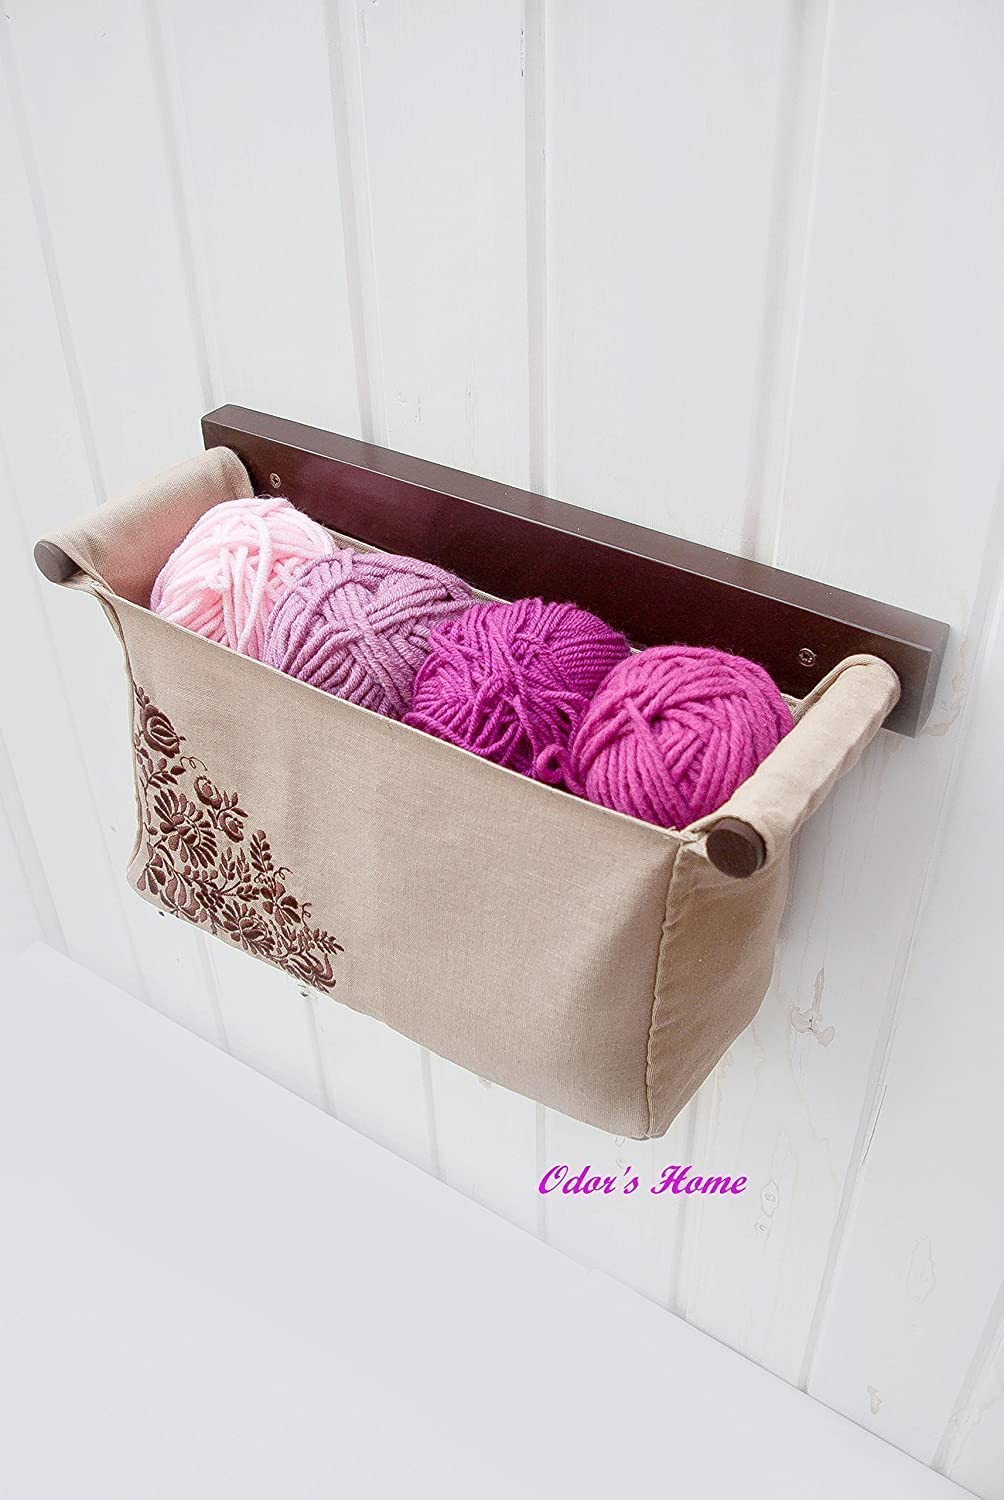 Wall hanging knitting needle case - knitting project bag with embroidered Hungarian Kalocsa embroidery in chocolate brown colour